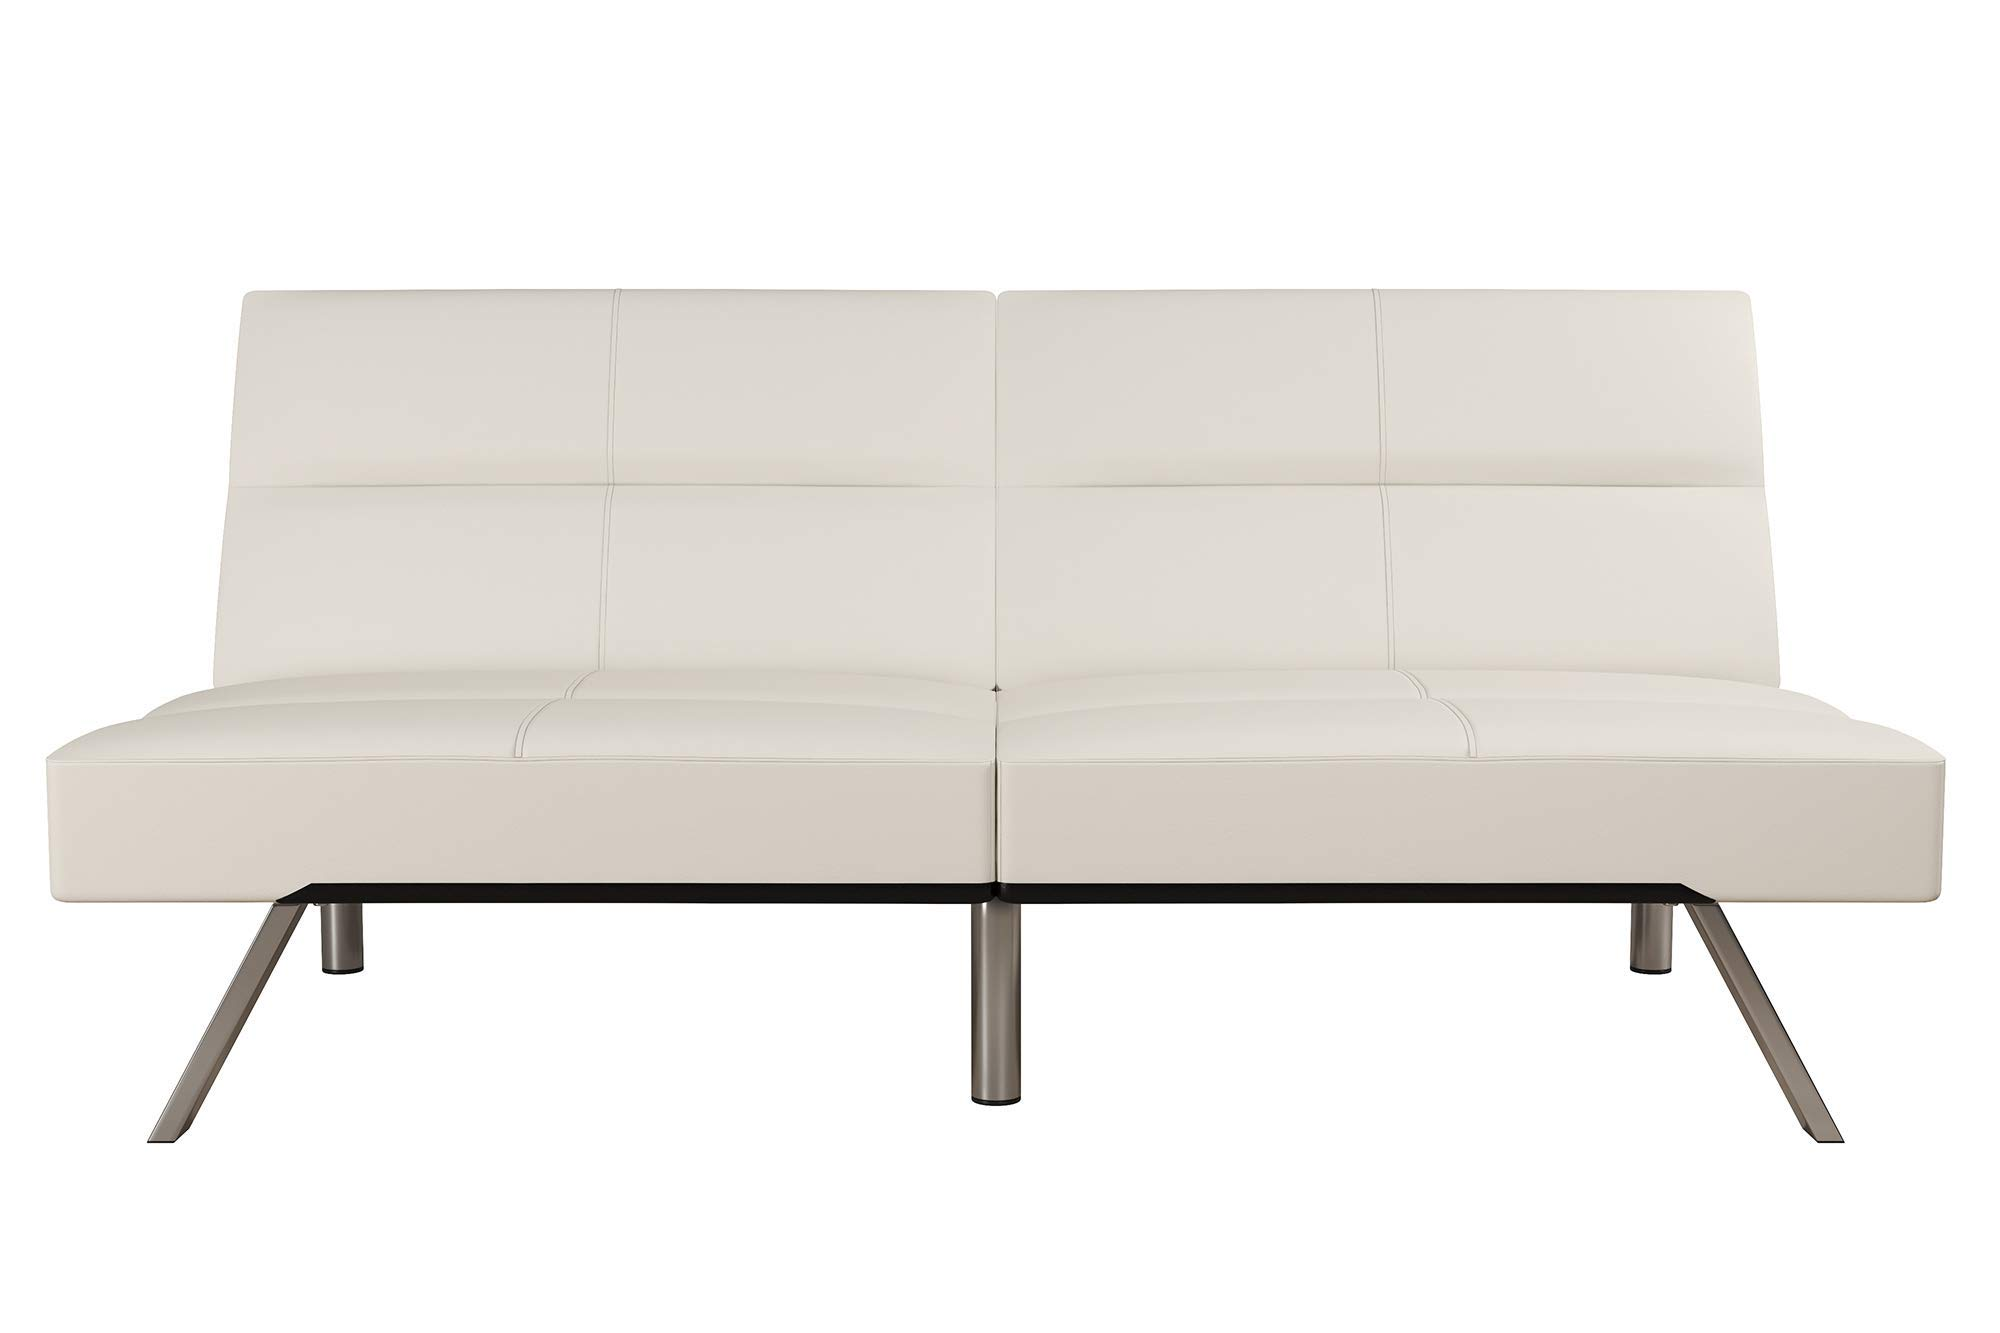 DHP Studio Convertible Futon Couch, Vanilla Faux Leather by DHP